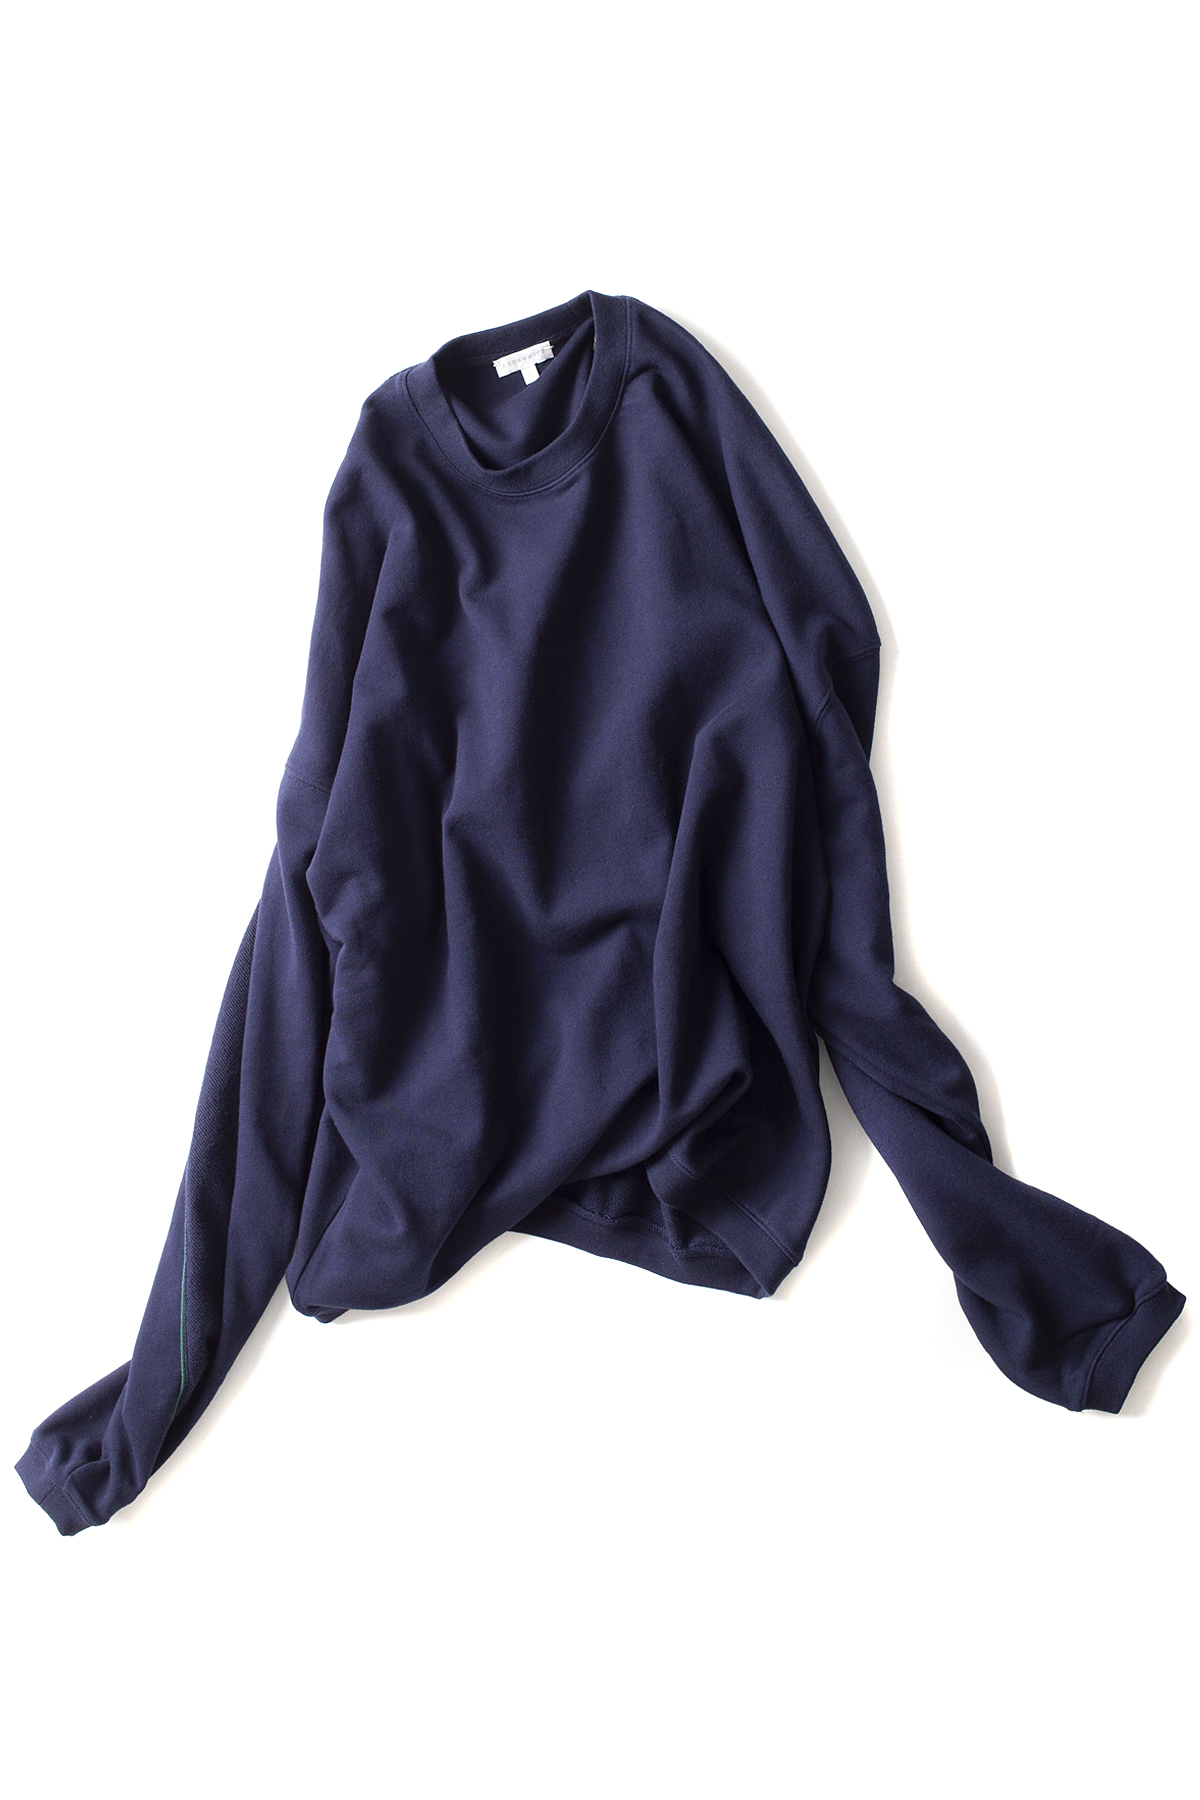 AECA WHITE : Oversize Panel Sweatshirt (Navy)